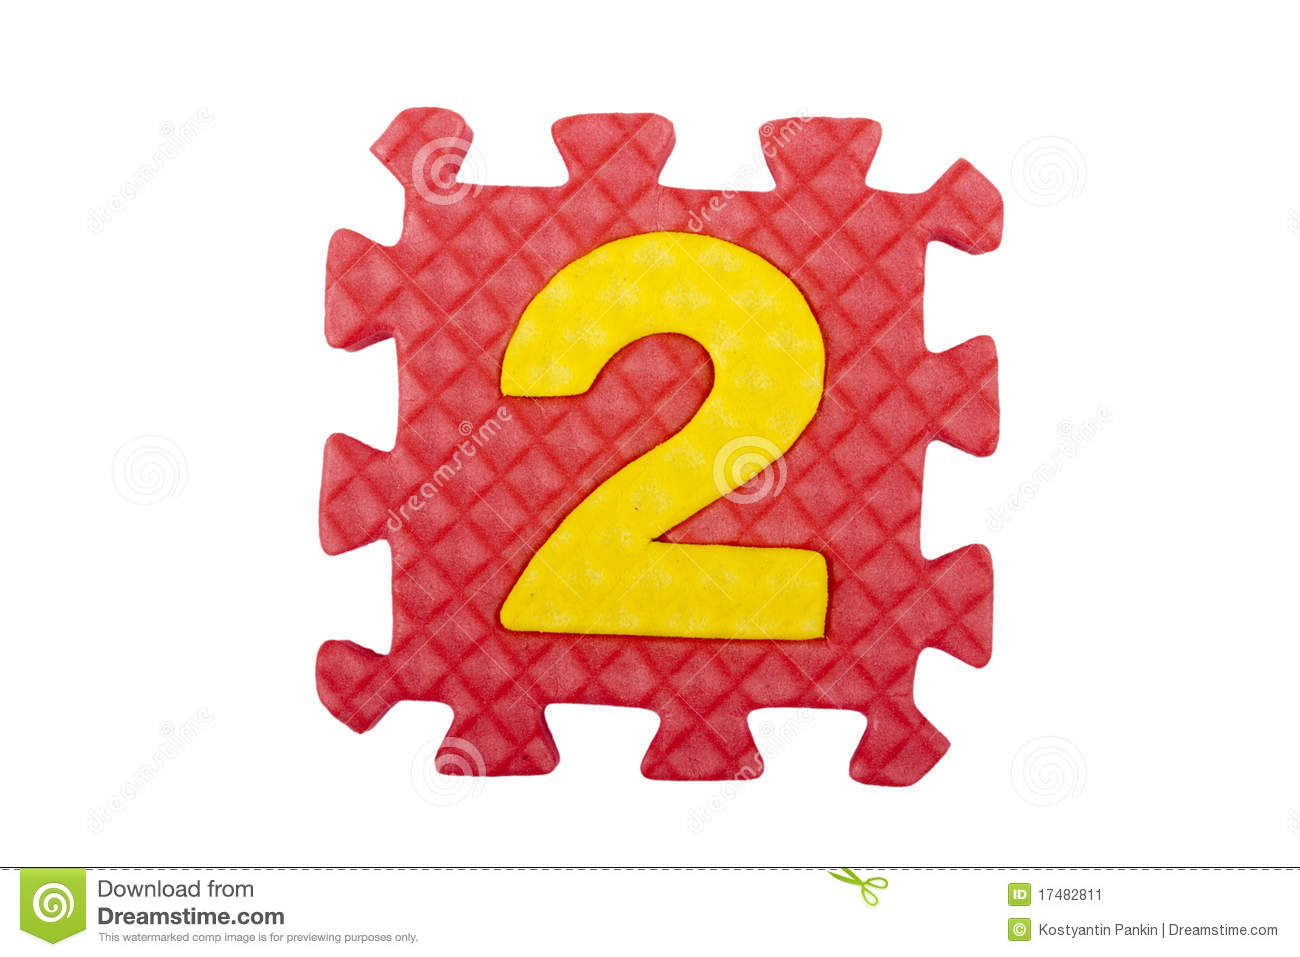 The figure 2 of a set of puzzles made out of polystyrene on a white ...